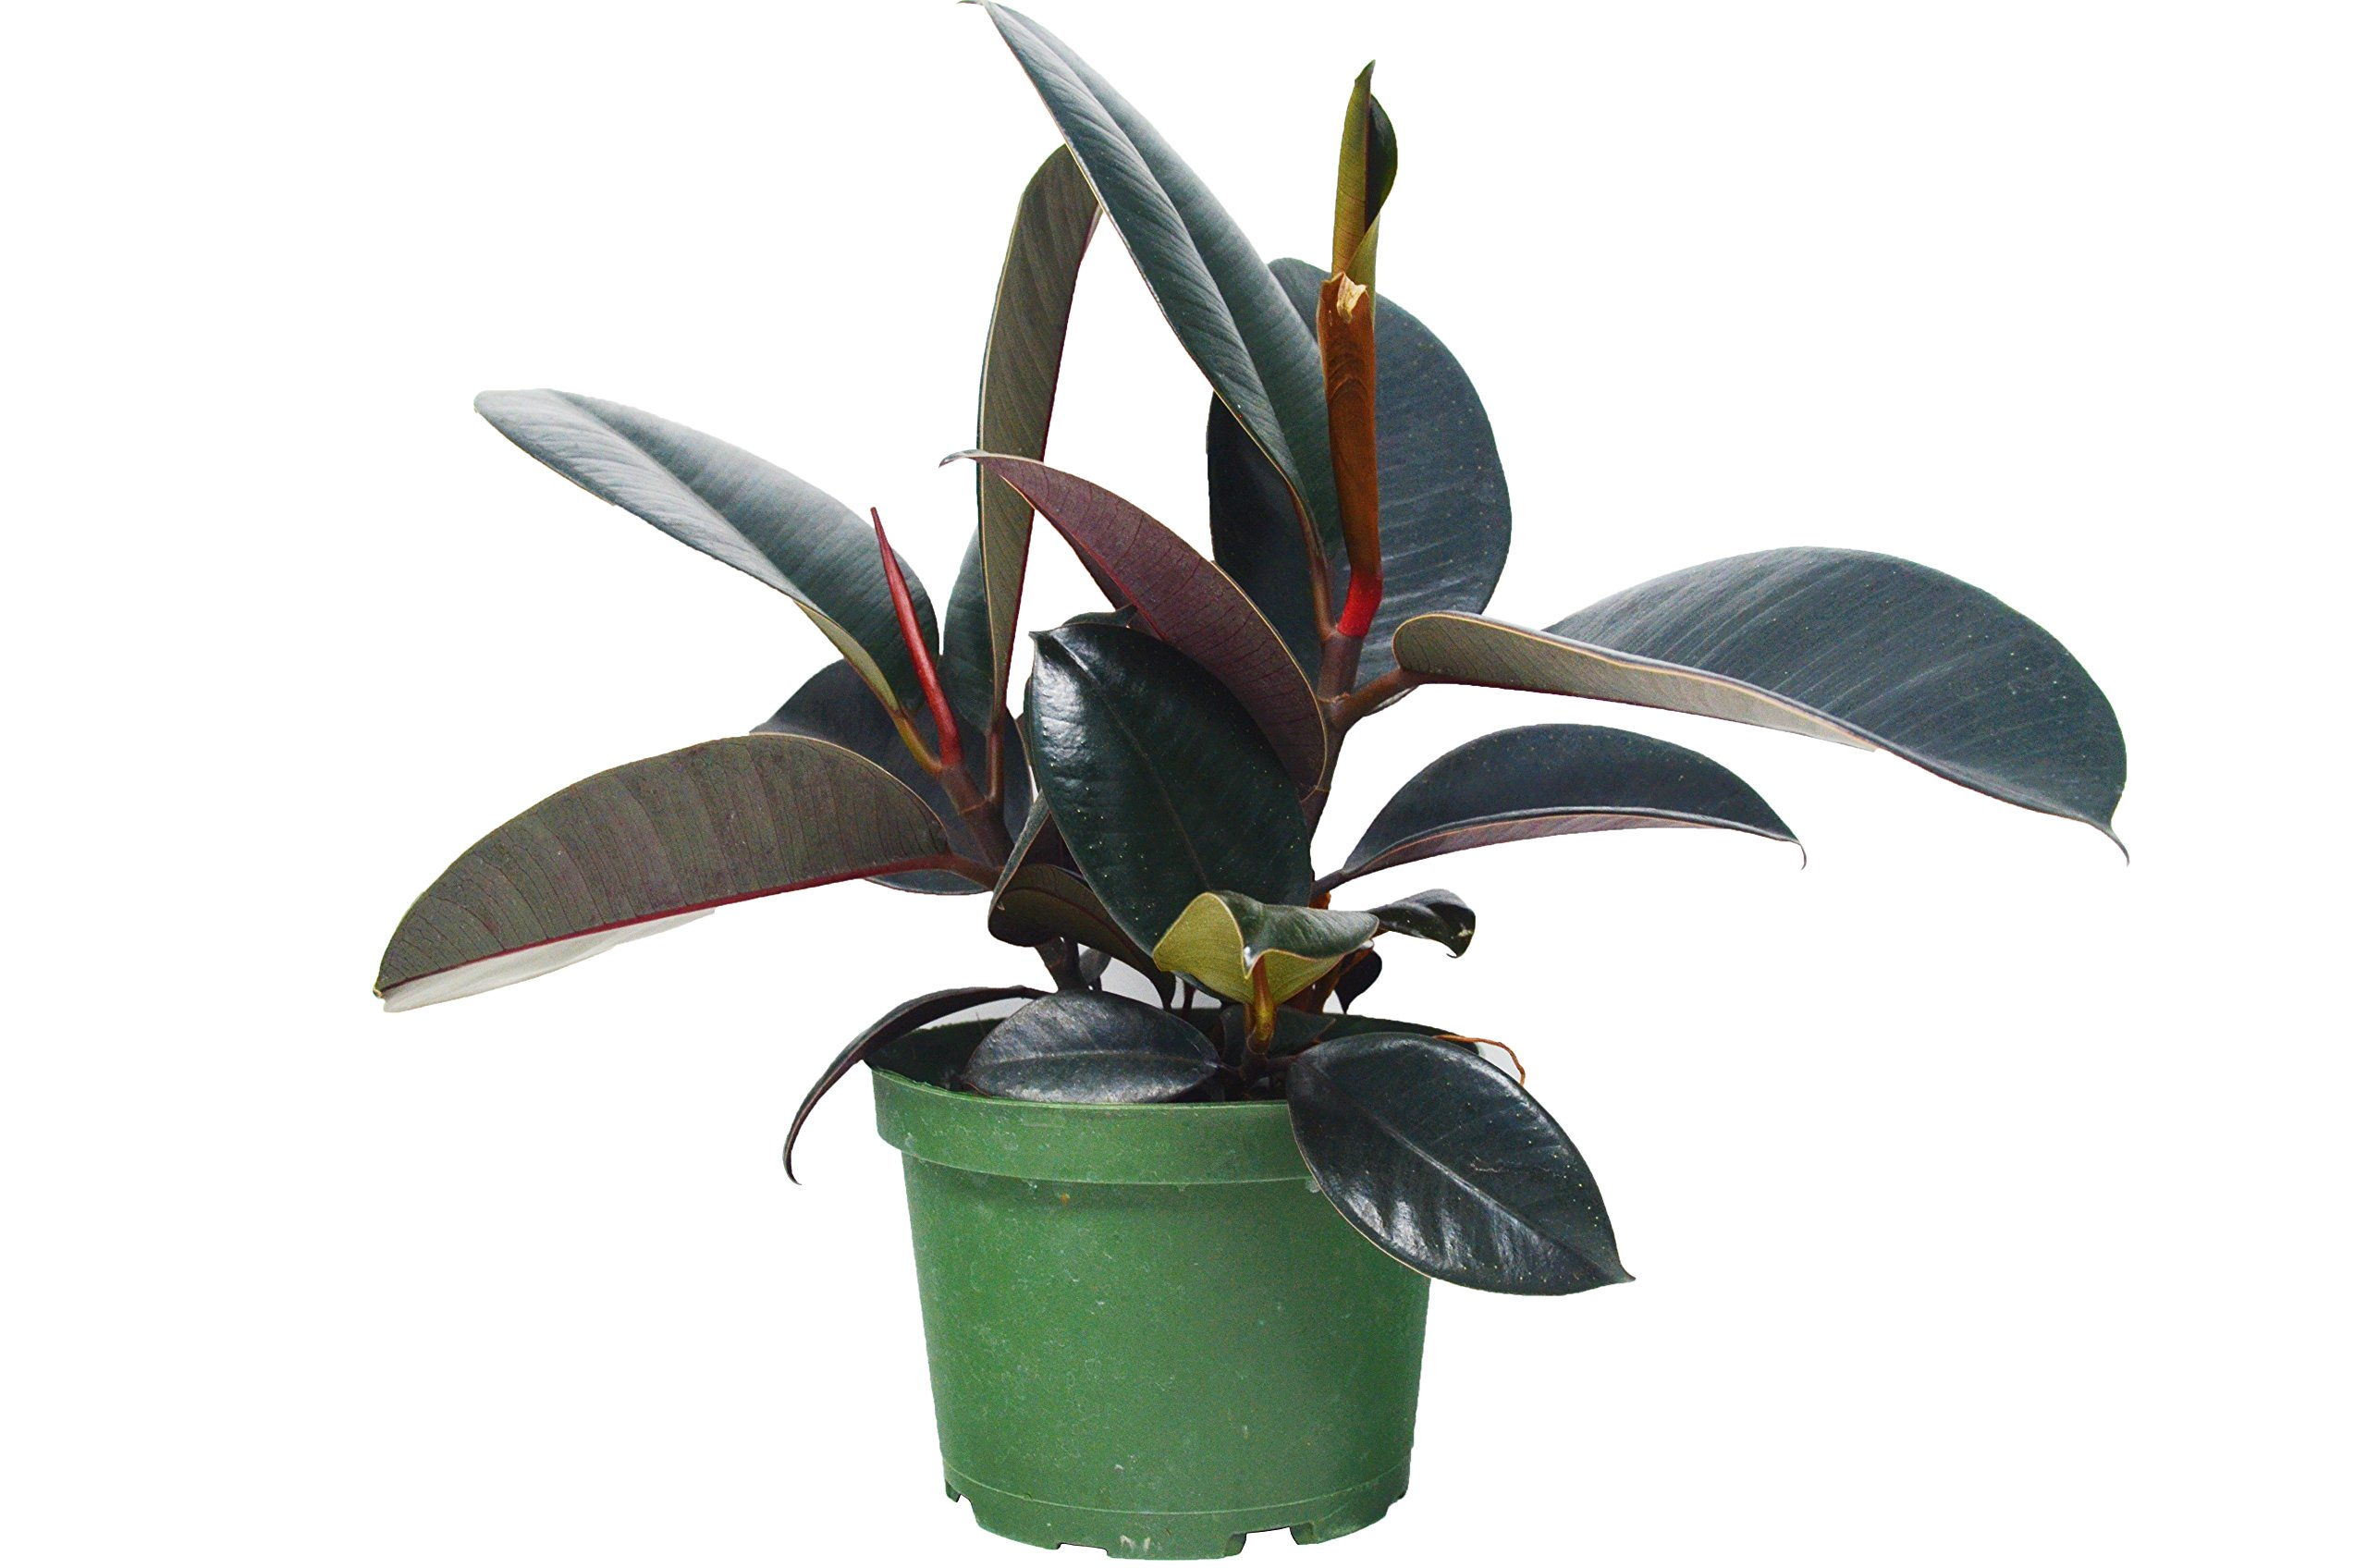 Ficus 'Burgundy' Rubber Plant - In 6'' Pot/12 - 18'' Tall/Live Plant/FREE Care Guide/House Plant/EASY CARE by House Plant Shop